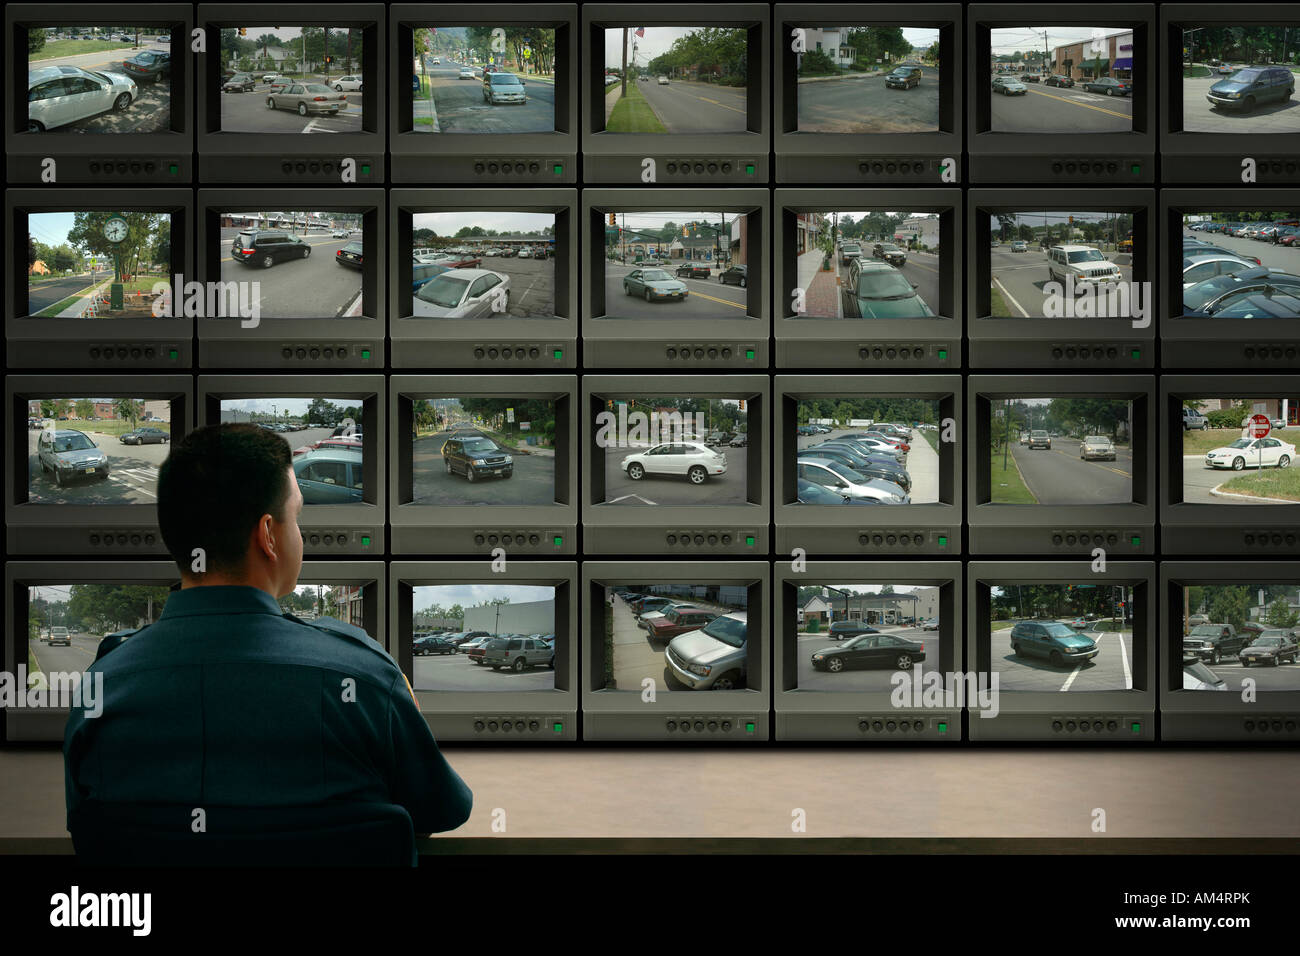 Police security surveillance with closed circuit cameras and monitors of public streets and traffic - Stock Image